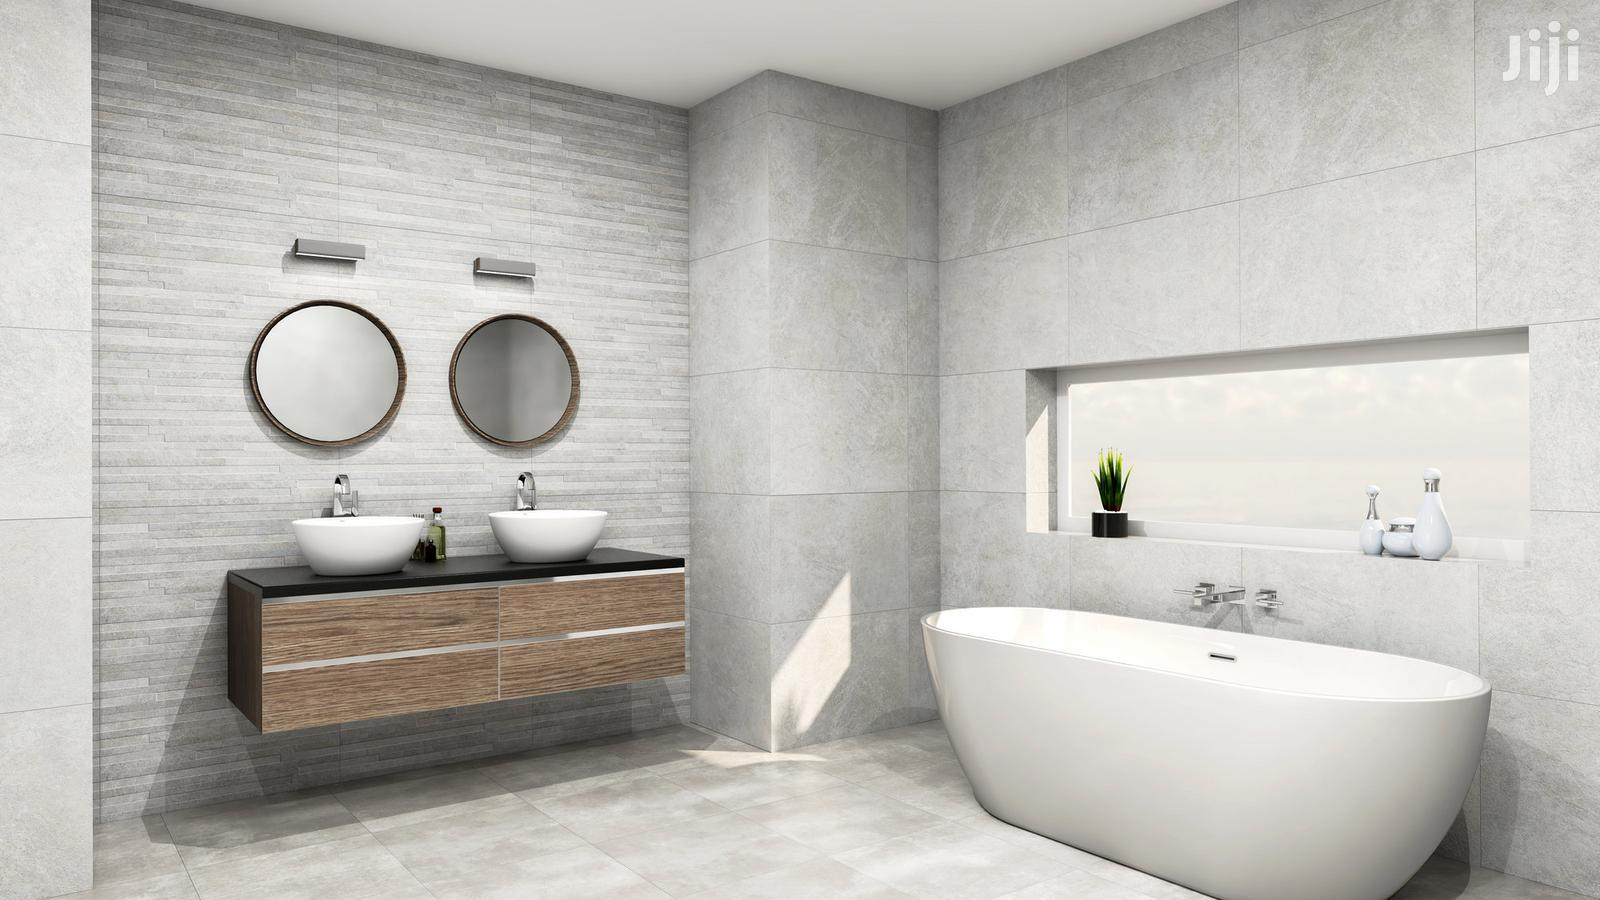 Spanish Porcelain Wall And Floor Tiles